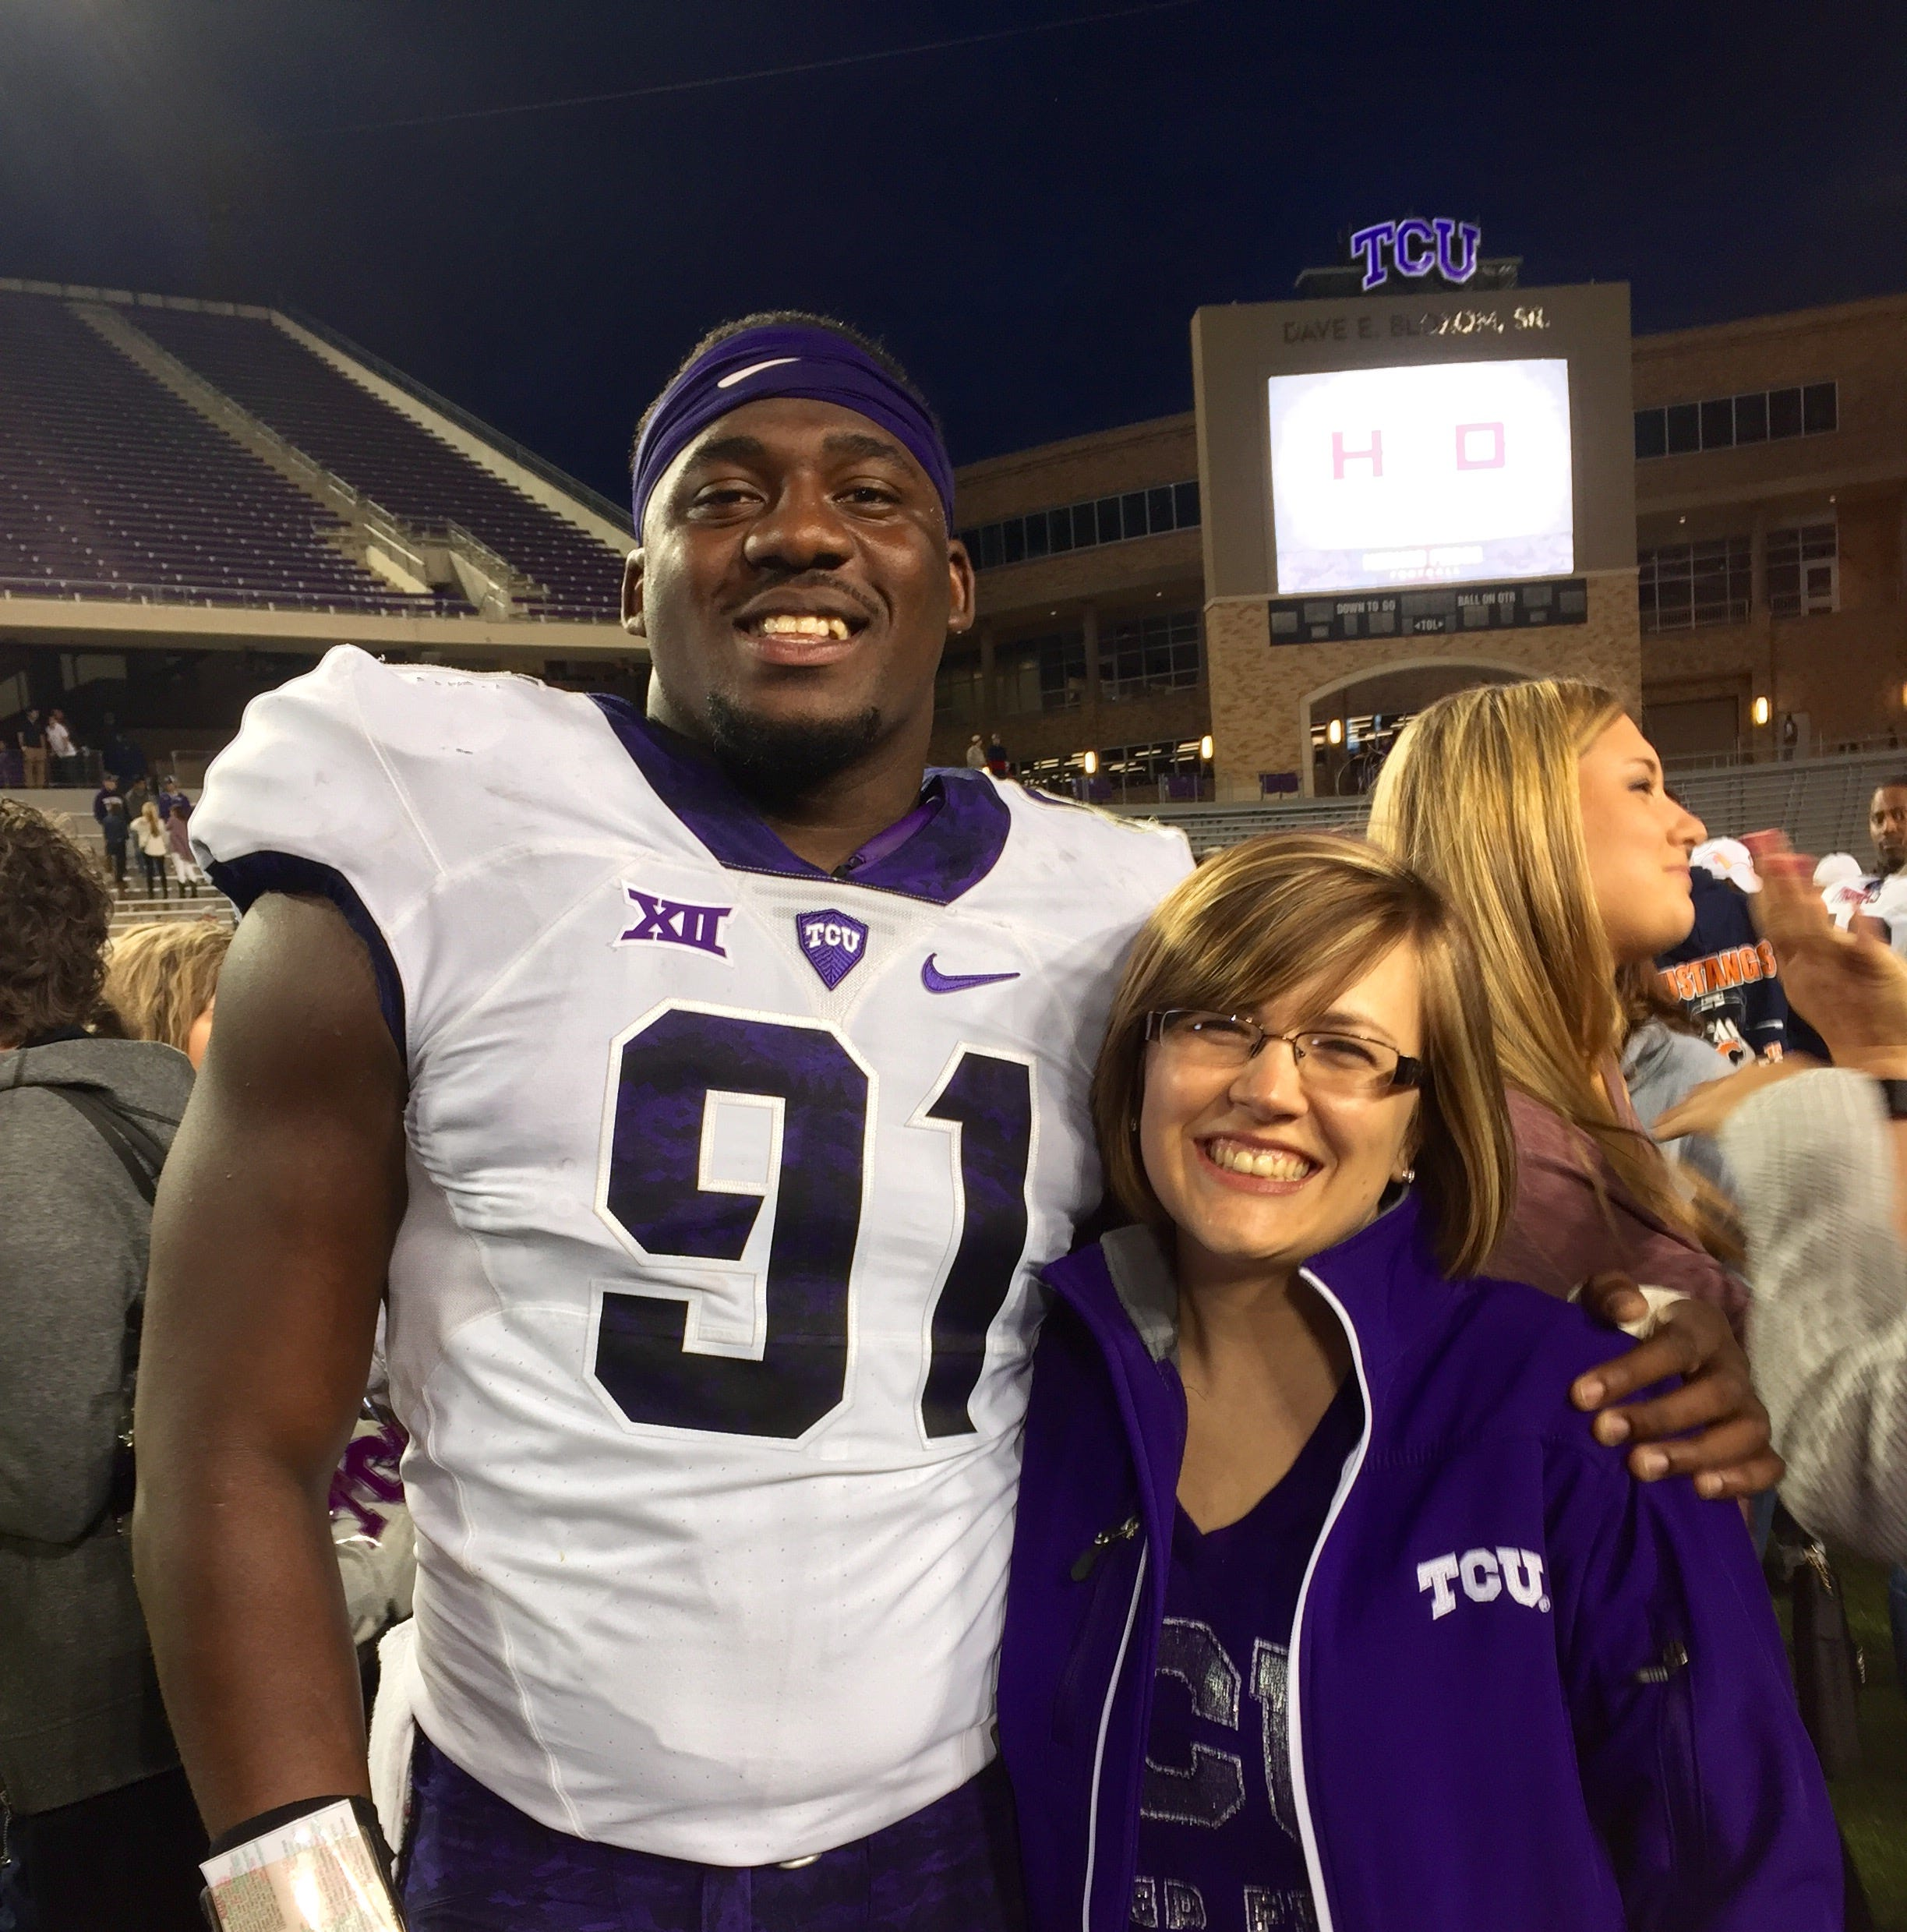 L.J. Collier's rise from TCU to NFL Draft pick includes special bond with Munday teacher